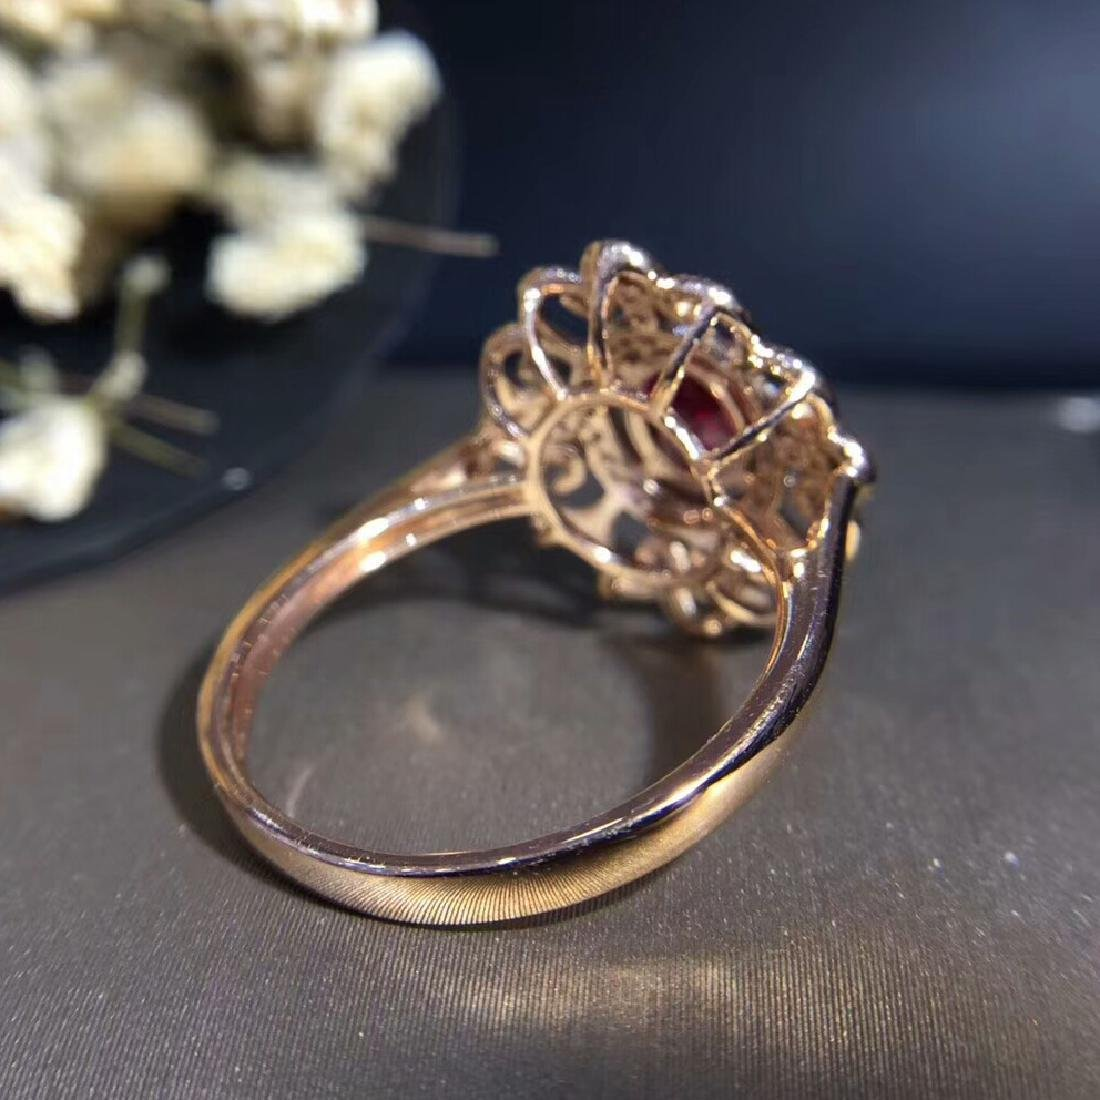 0.95ct Ruby Ring in 18kt white Gold - 4